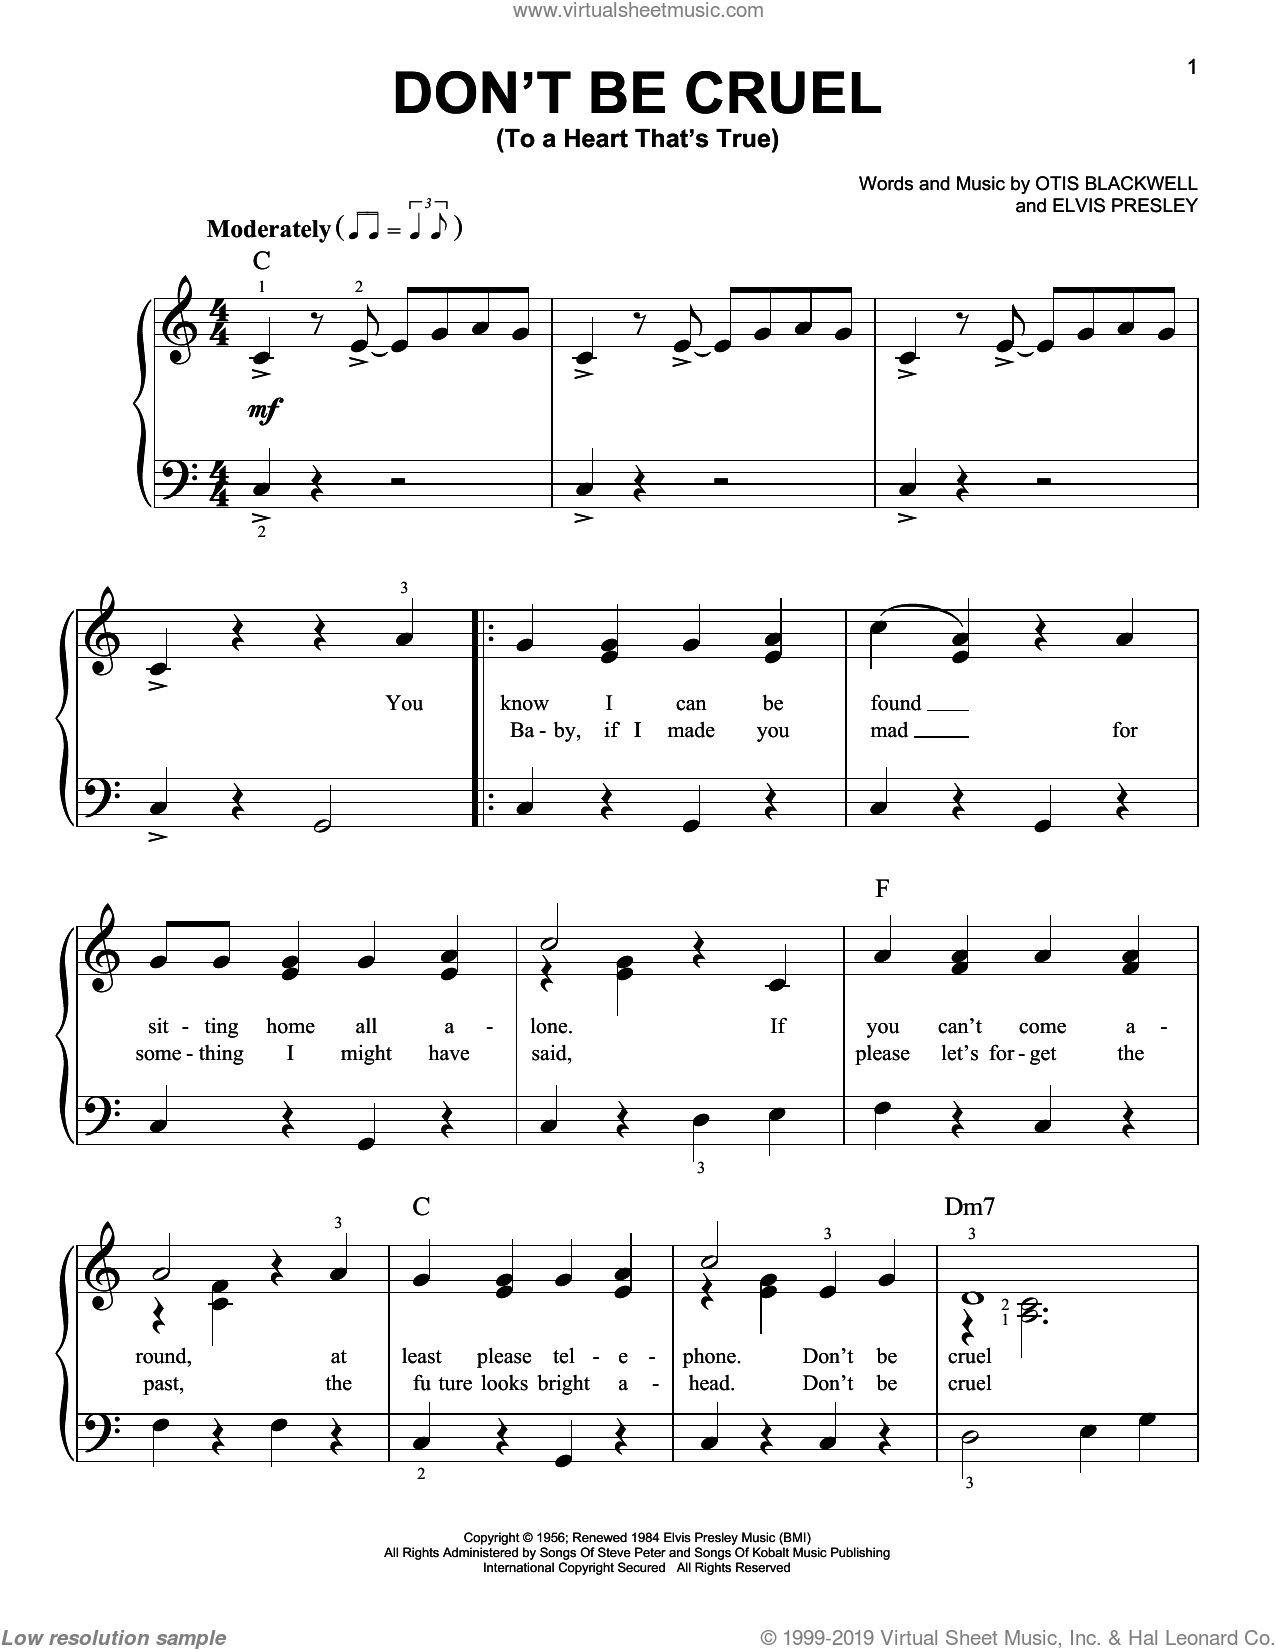 Don't Be Cruel (To A Heart That's True) sheet music for piano solo by Elvis Presley and Otis Blackwell, easy skill level